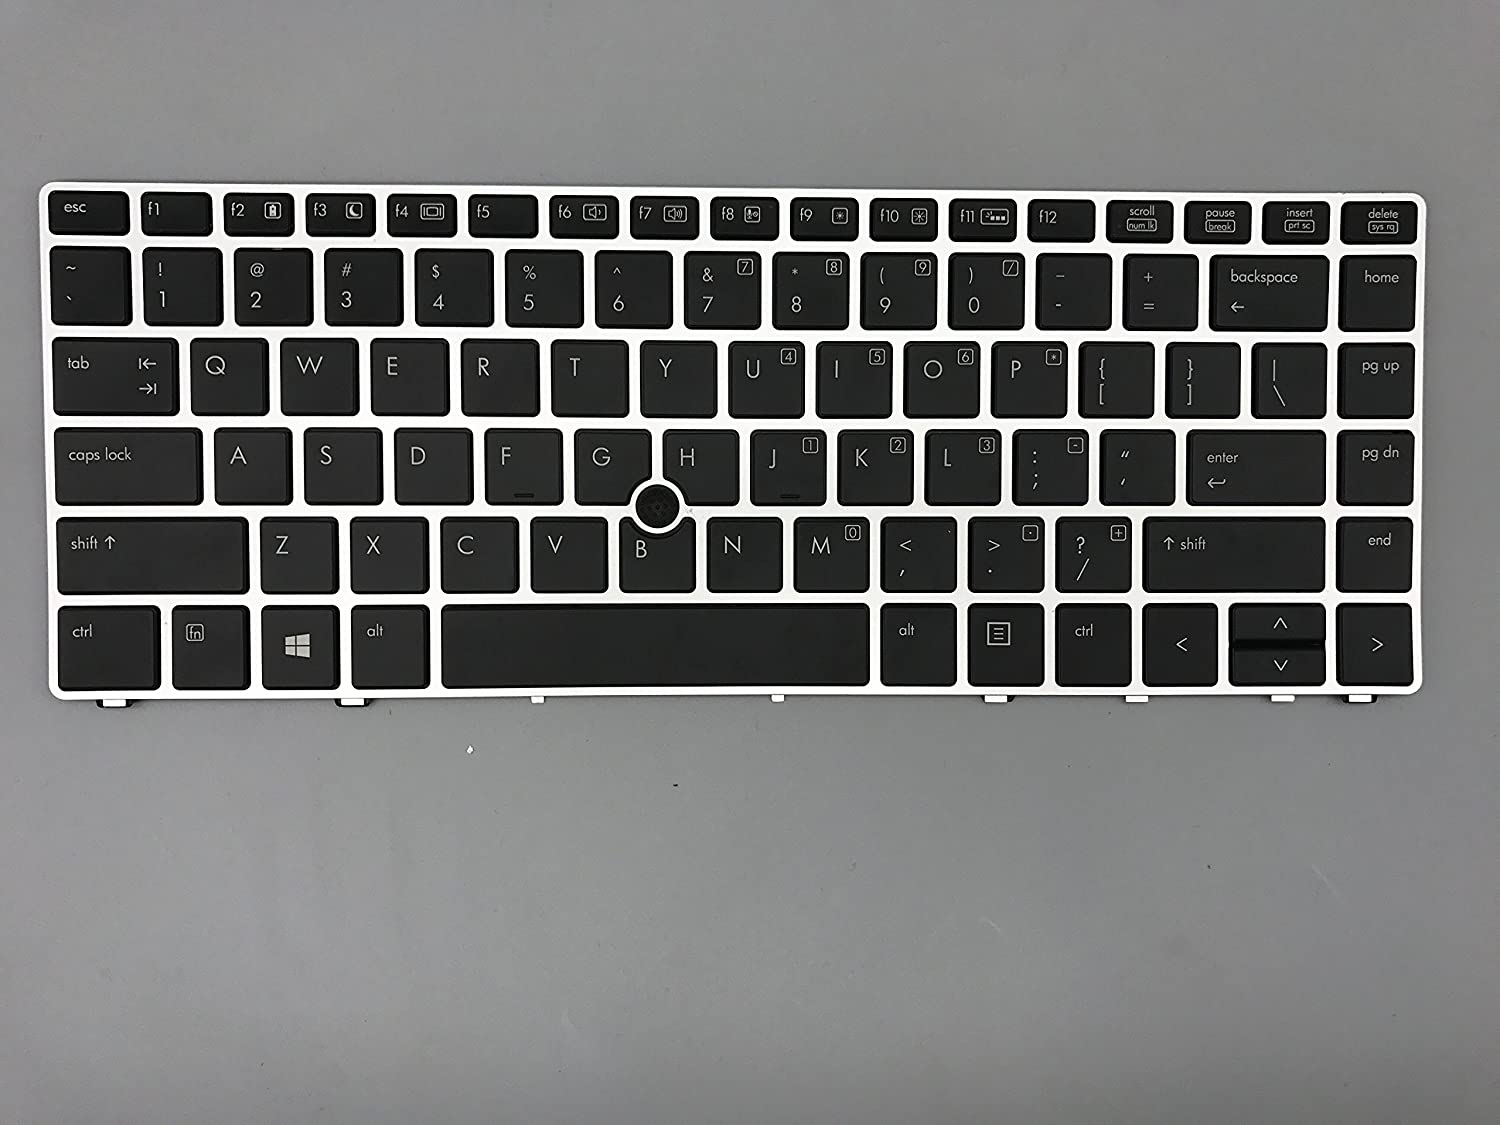 New Keyboard forHP Elitebook Folio 9470m Series US Layout P/N: 697685-001 SG-57400-XUA 6037B0080301 V135426AS2 Black keycap, Silver Frame, with Pointing, with Backlight